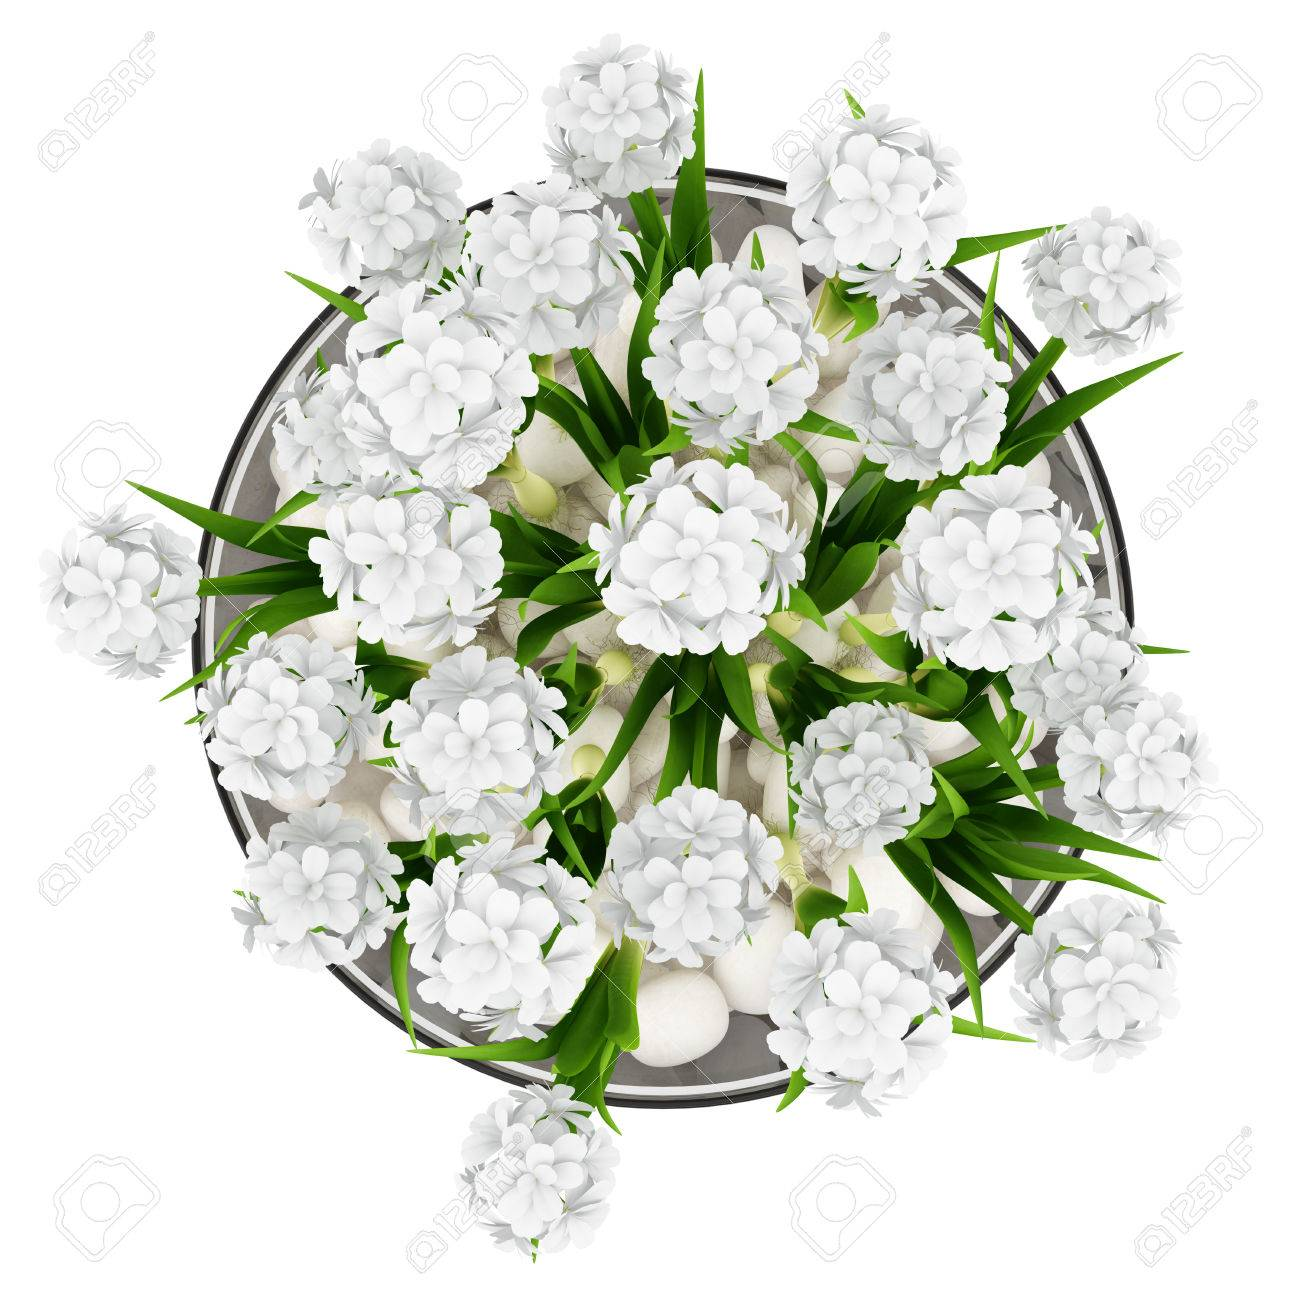 Top view of flowers in glass vase isolated on white background stock stock photo top view of flowers in glass vase isolated on white background mightylinksfo